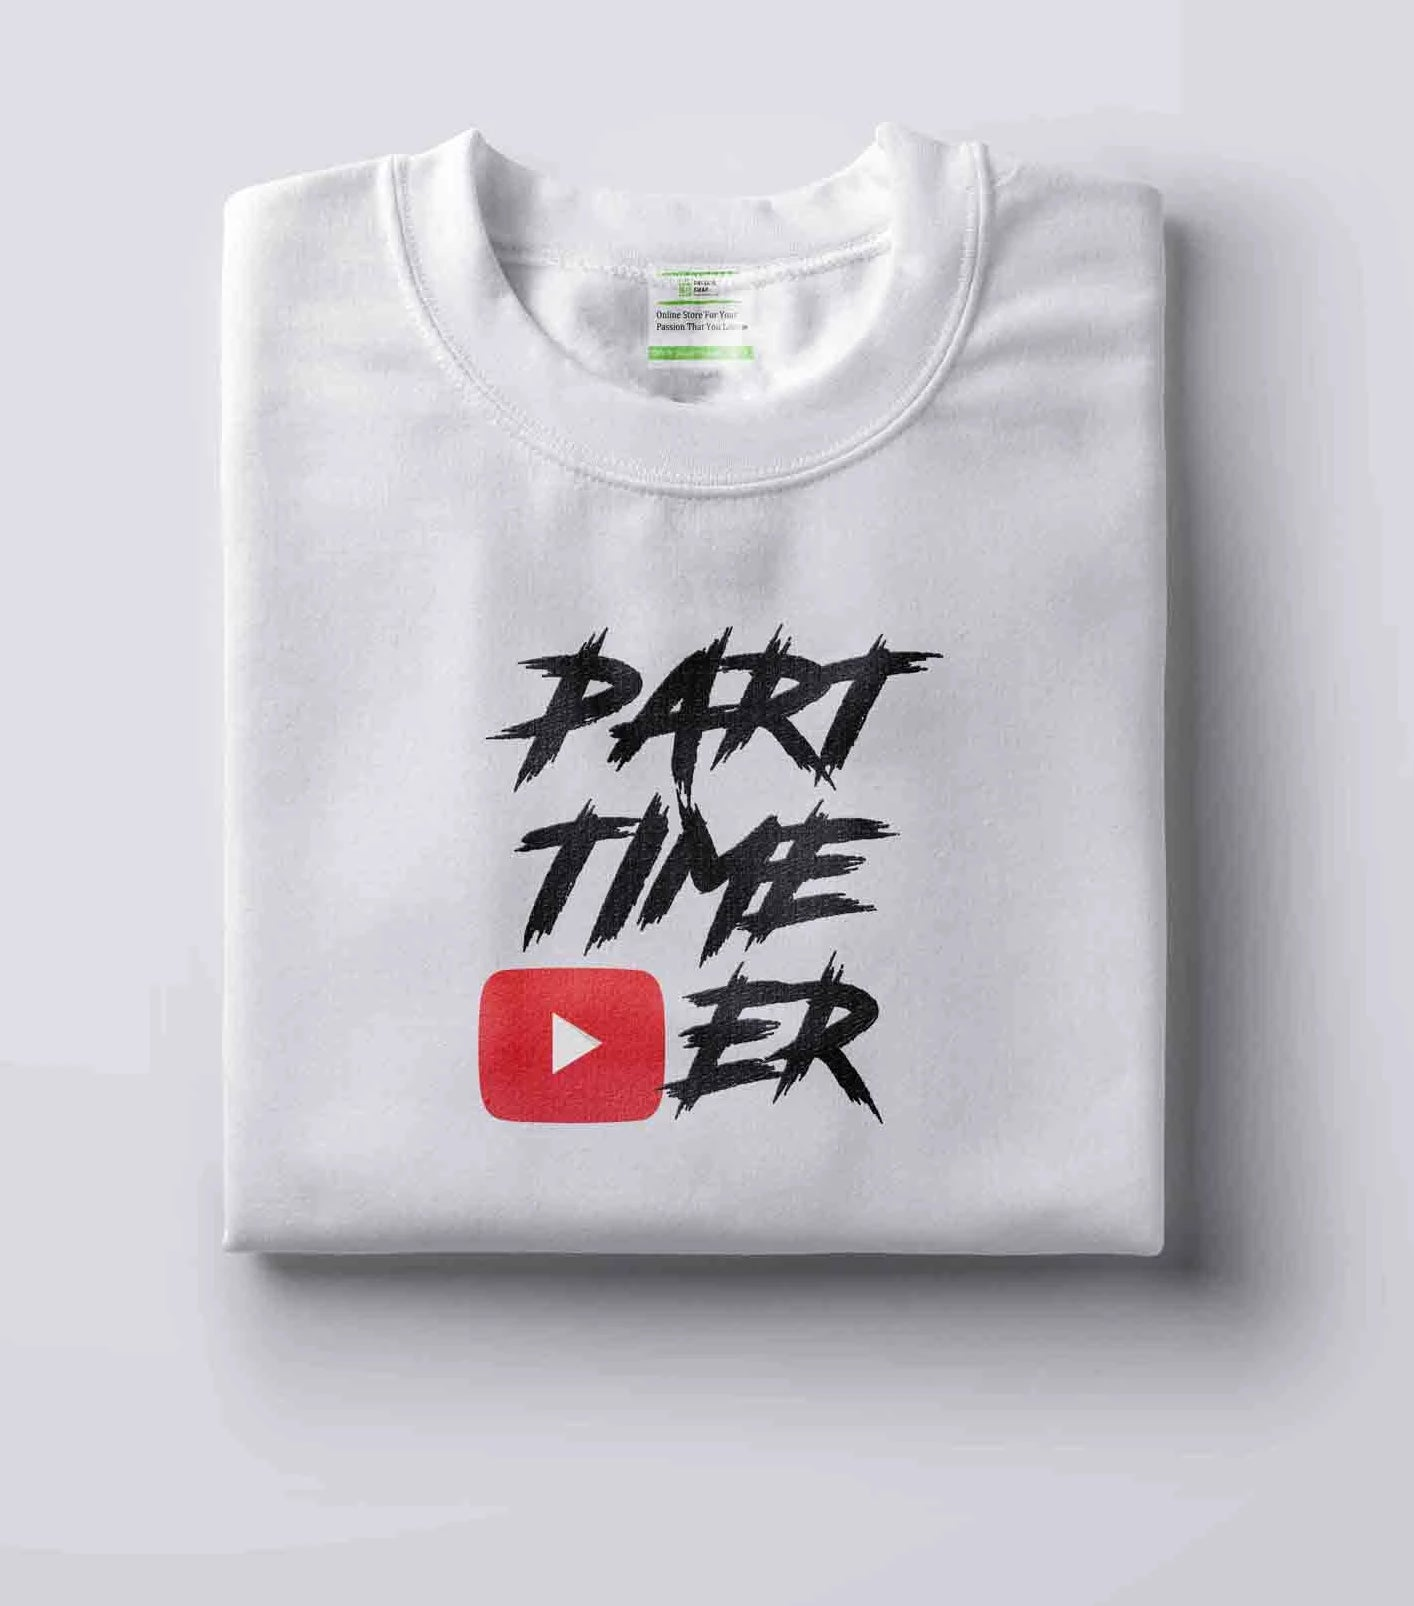 PART TIME YOUTUBER - T-SHIRT - Passion Swap